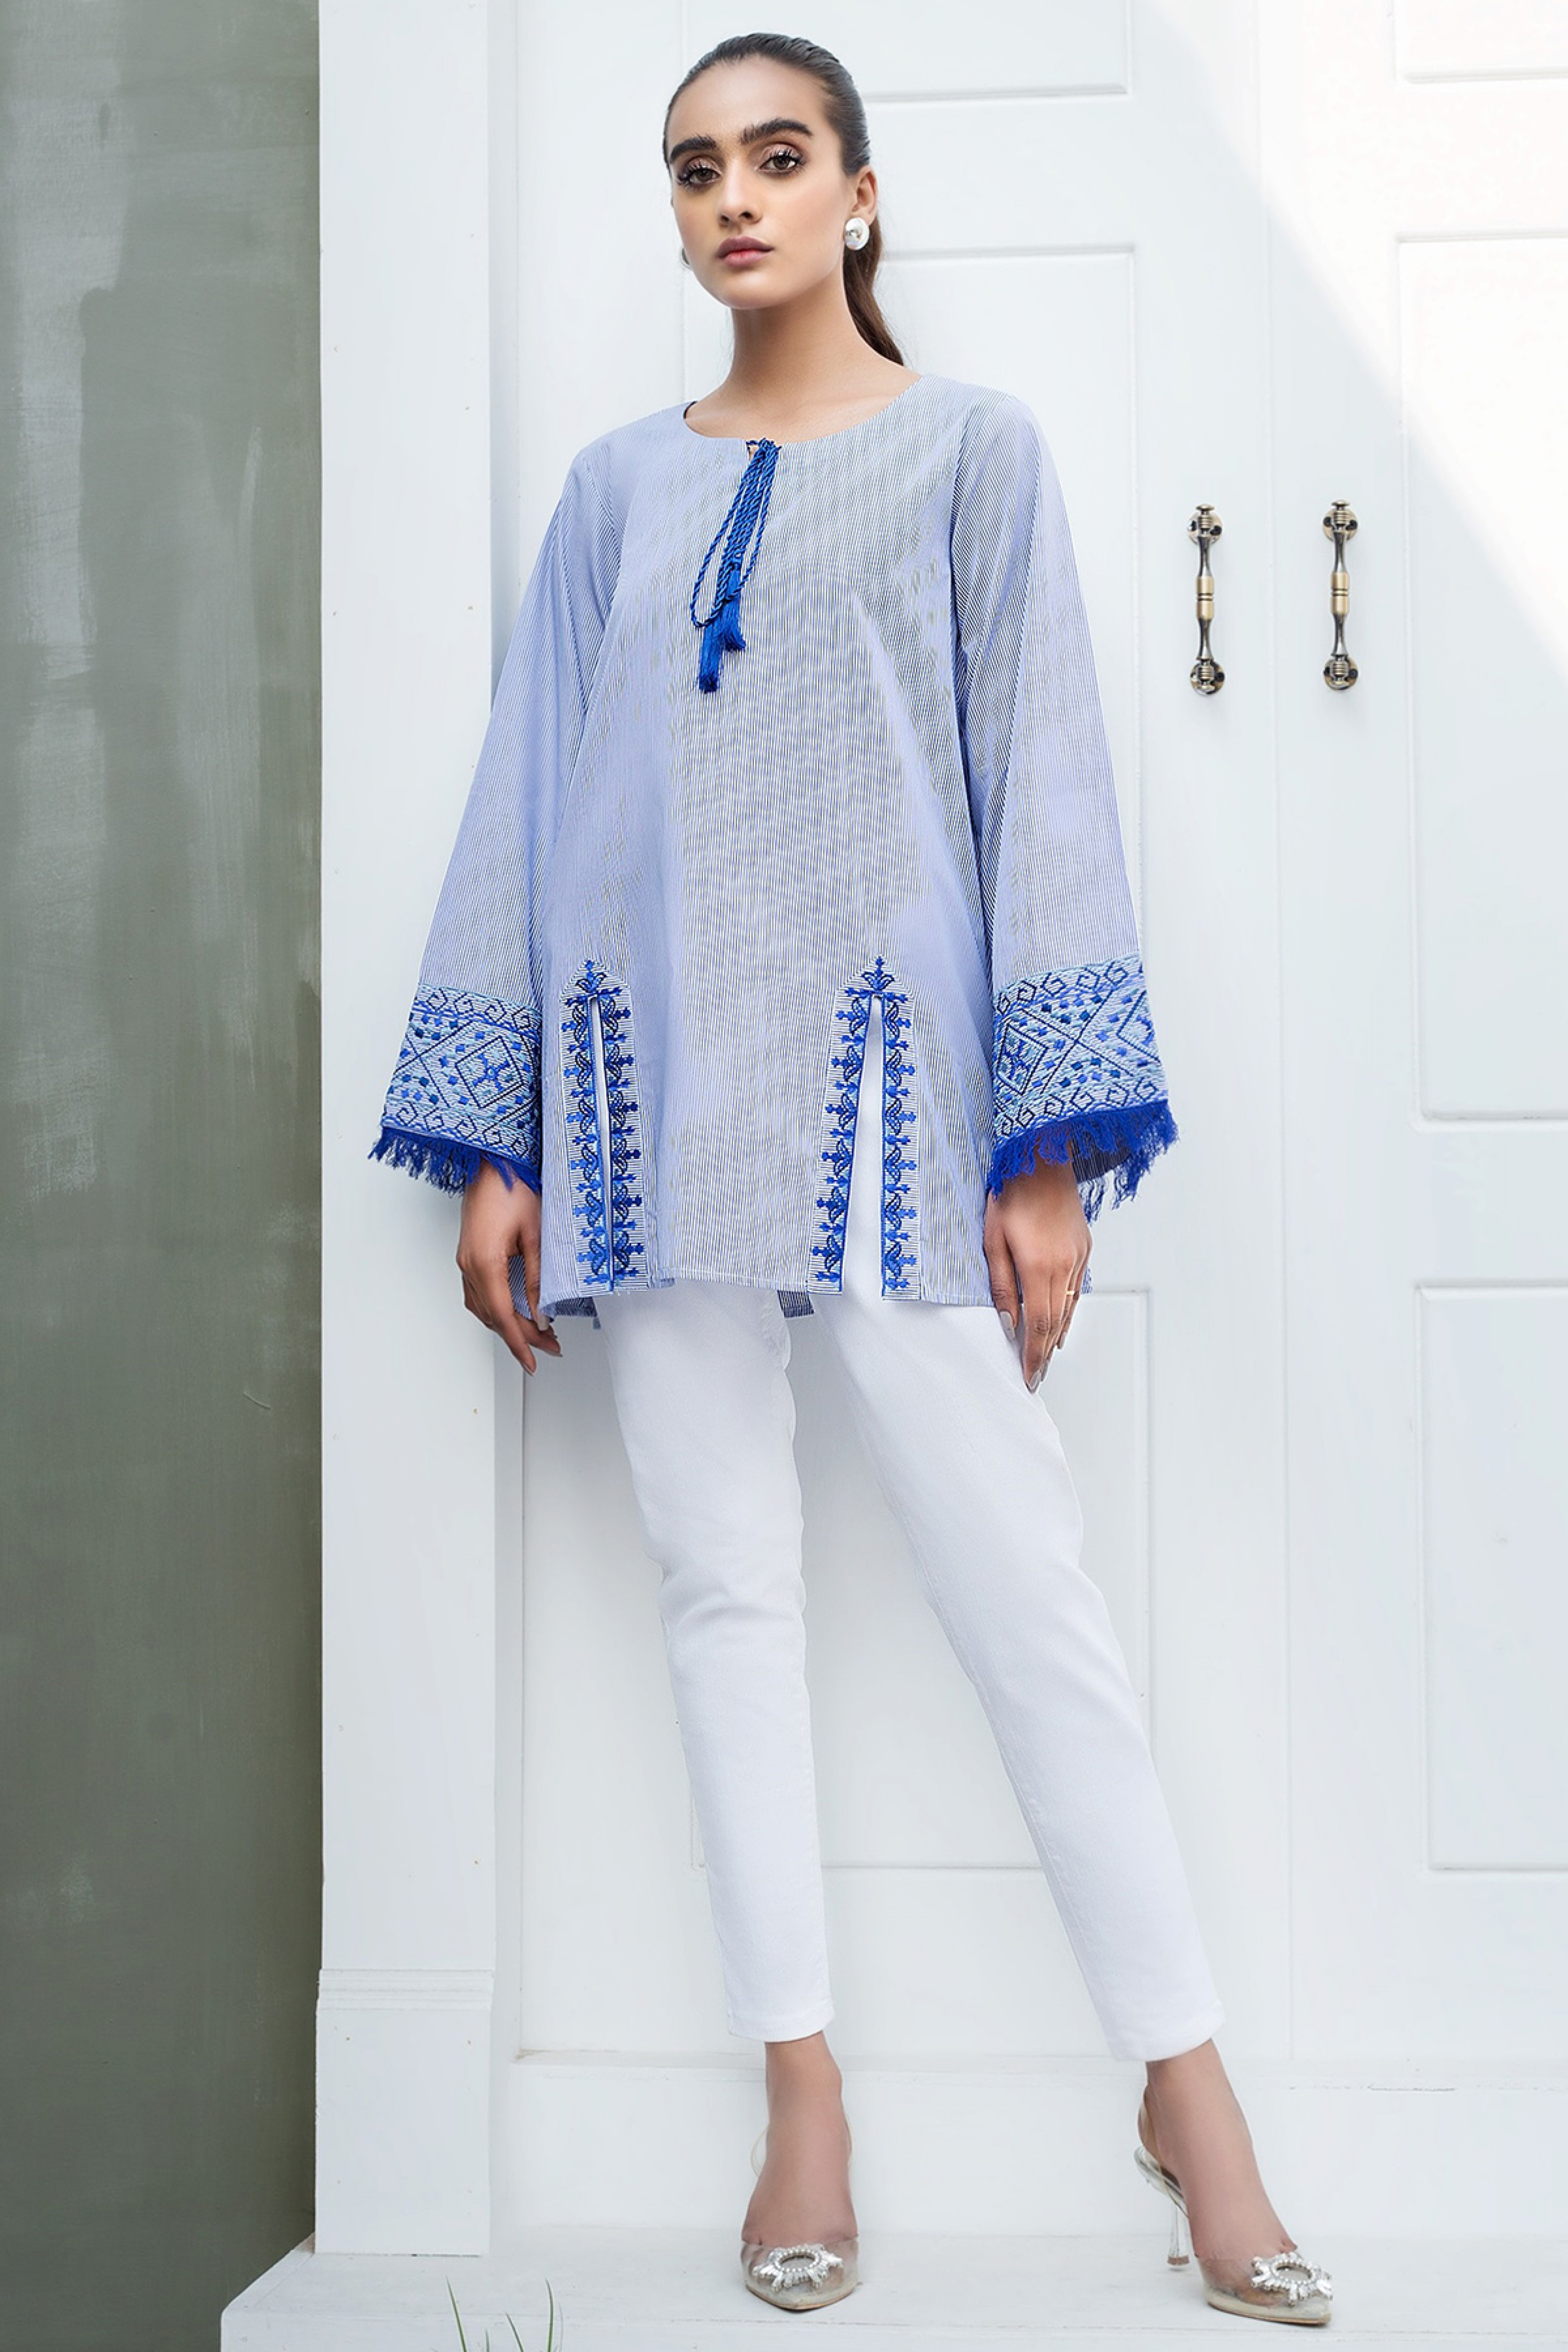 OLWEN(Embroidered Top)